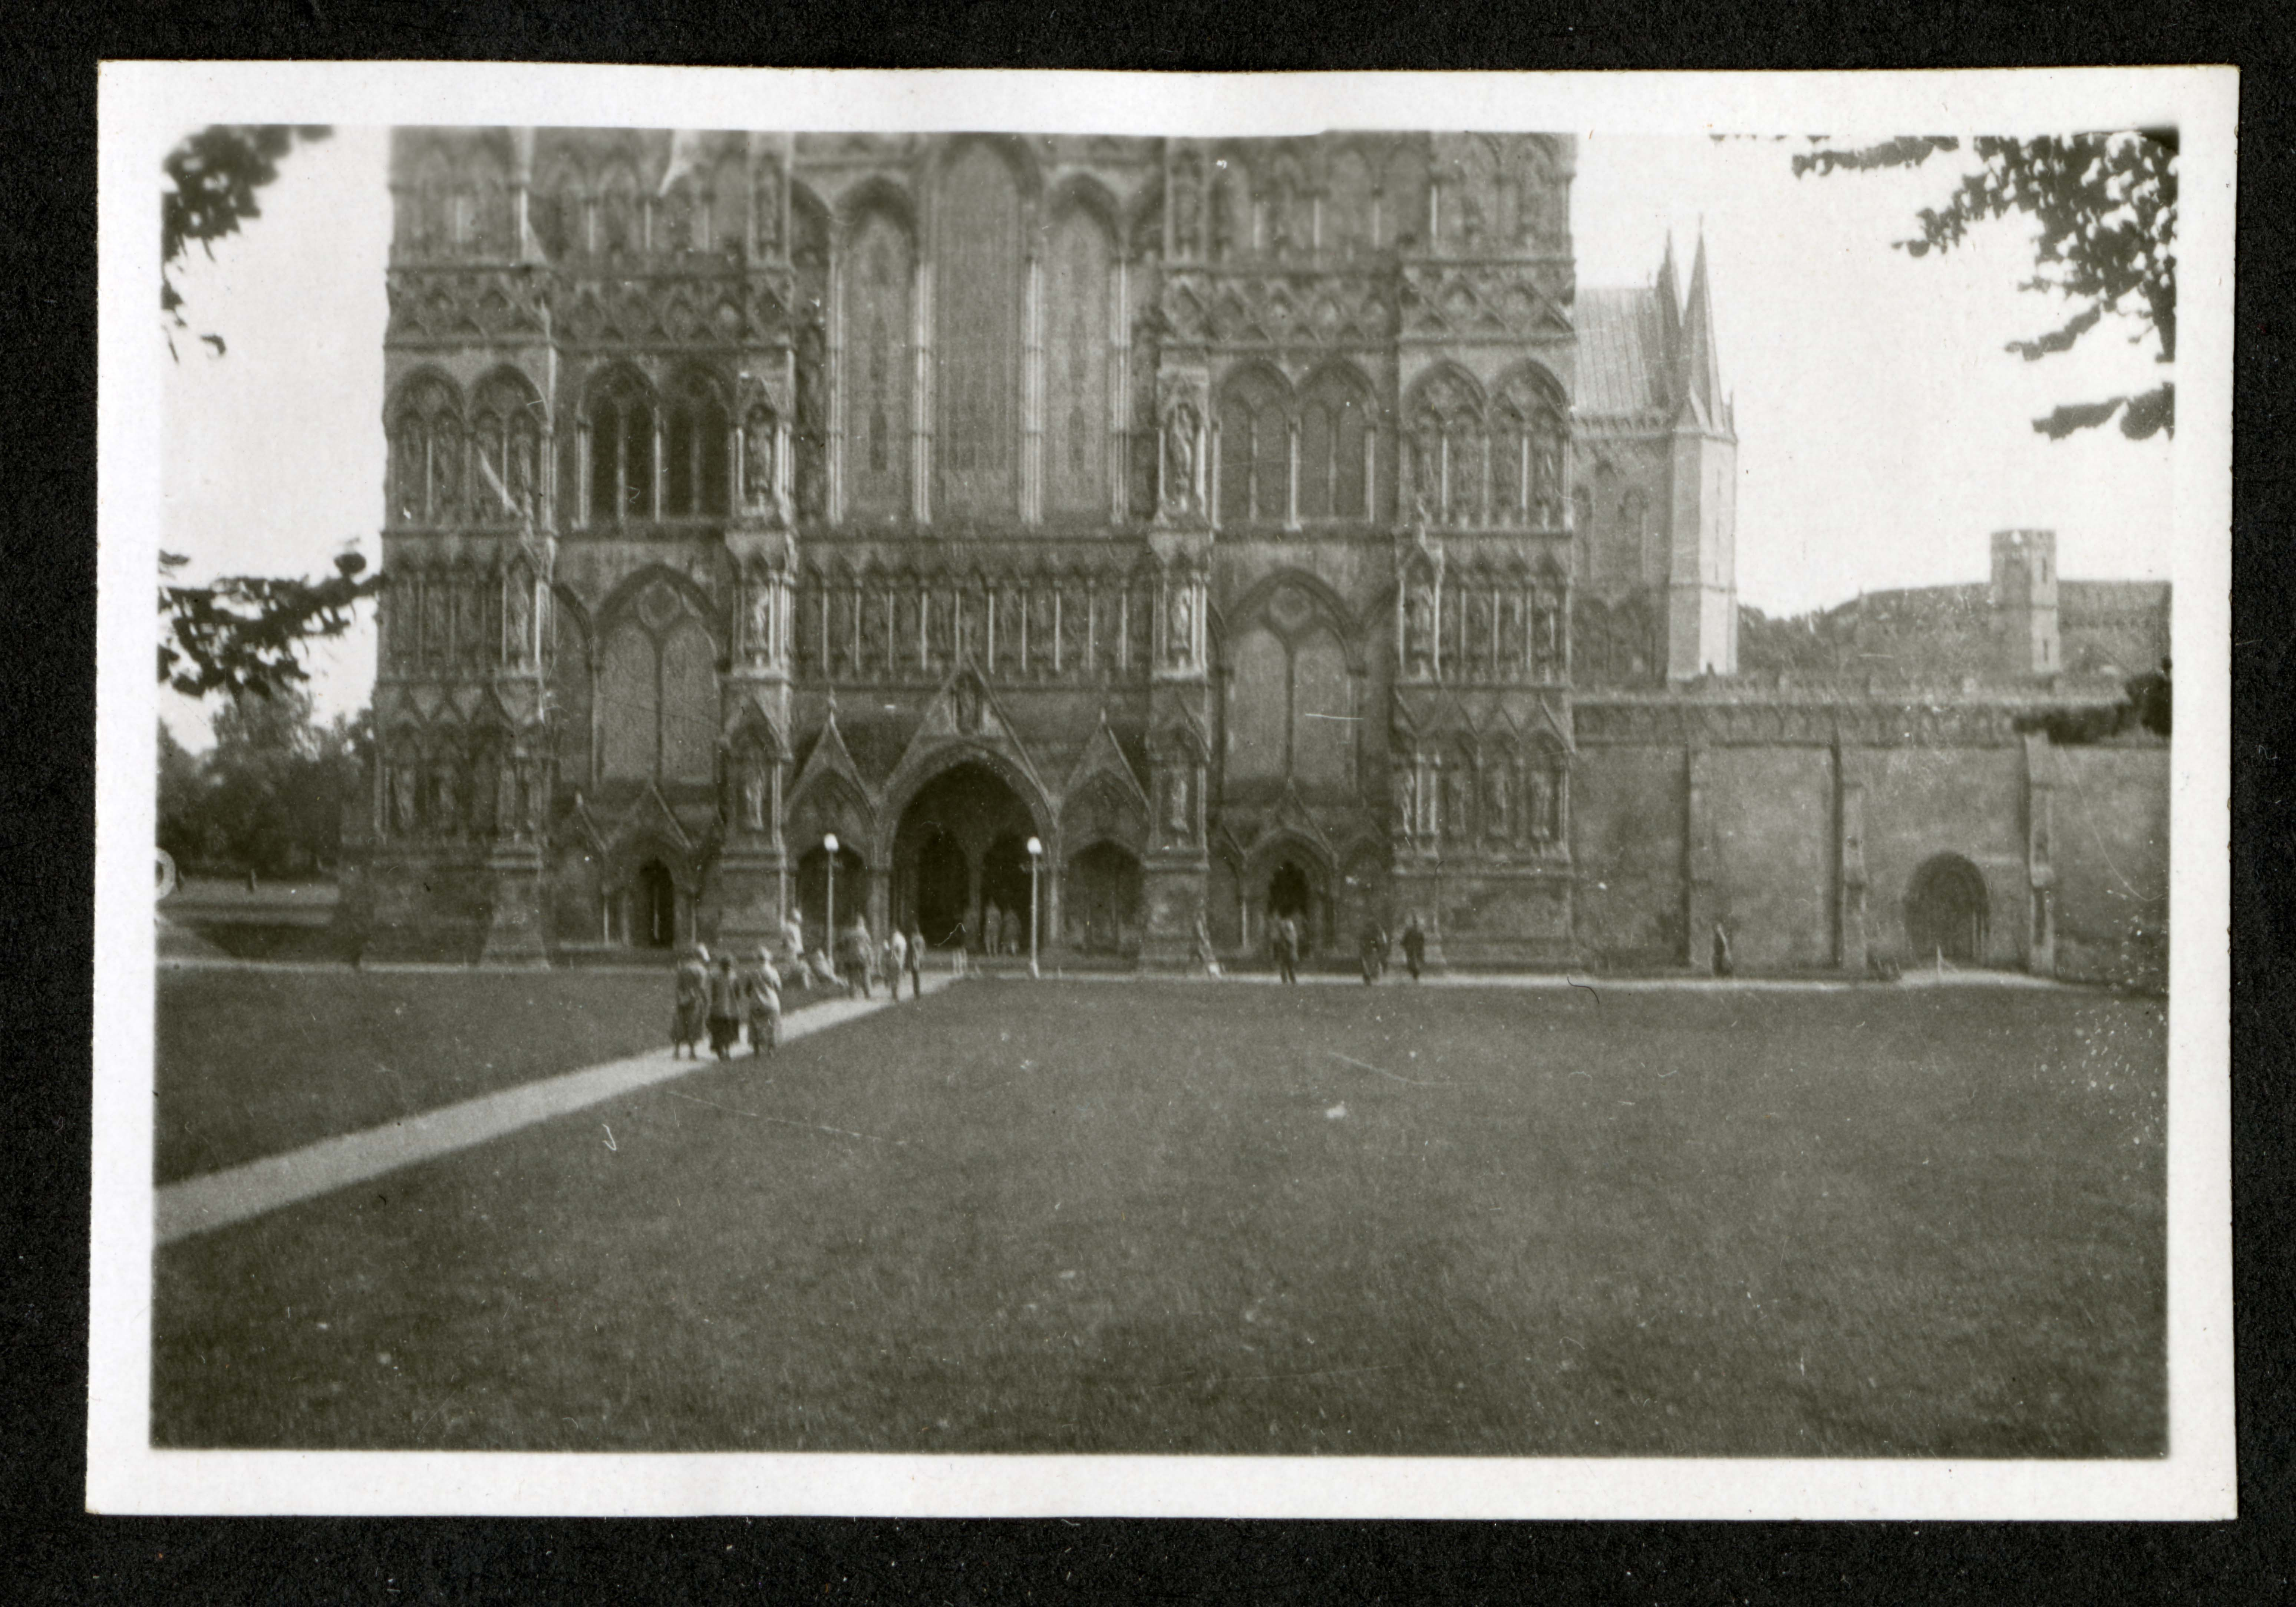 Westminster Abbey?, Record Unit 7091: Science Service, Records, circa 1910-1963, Smithsonian Institution Archives, image no. SIA2015-003204.